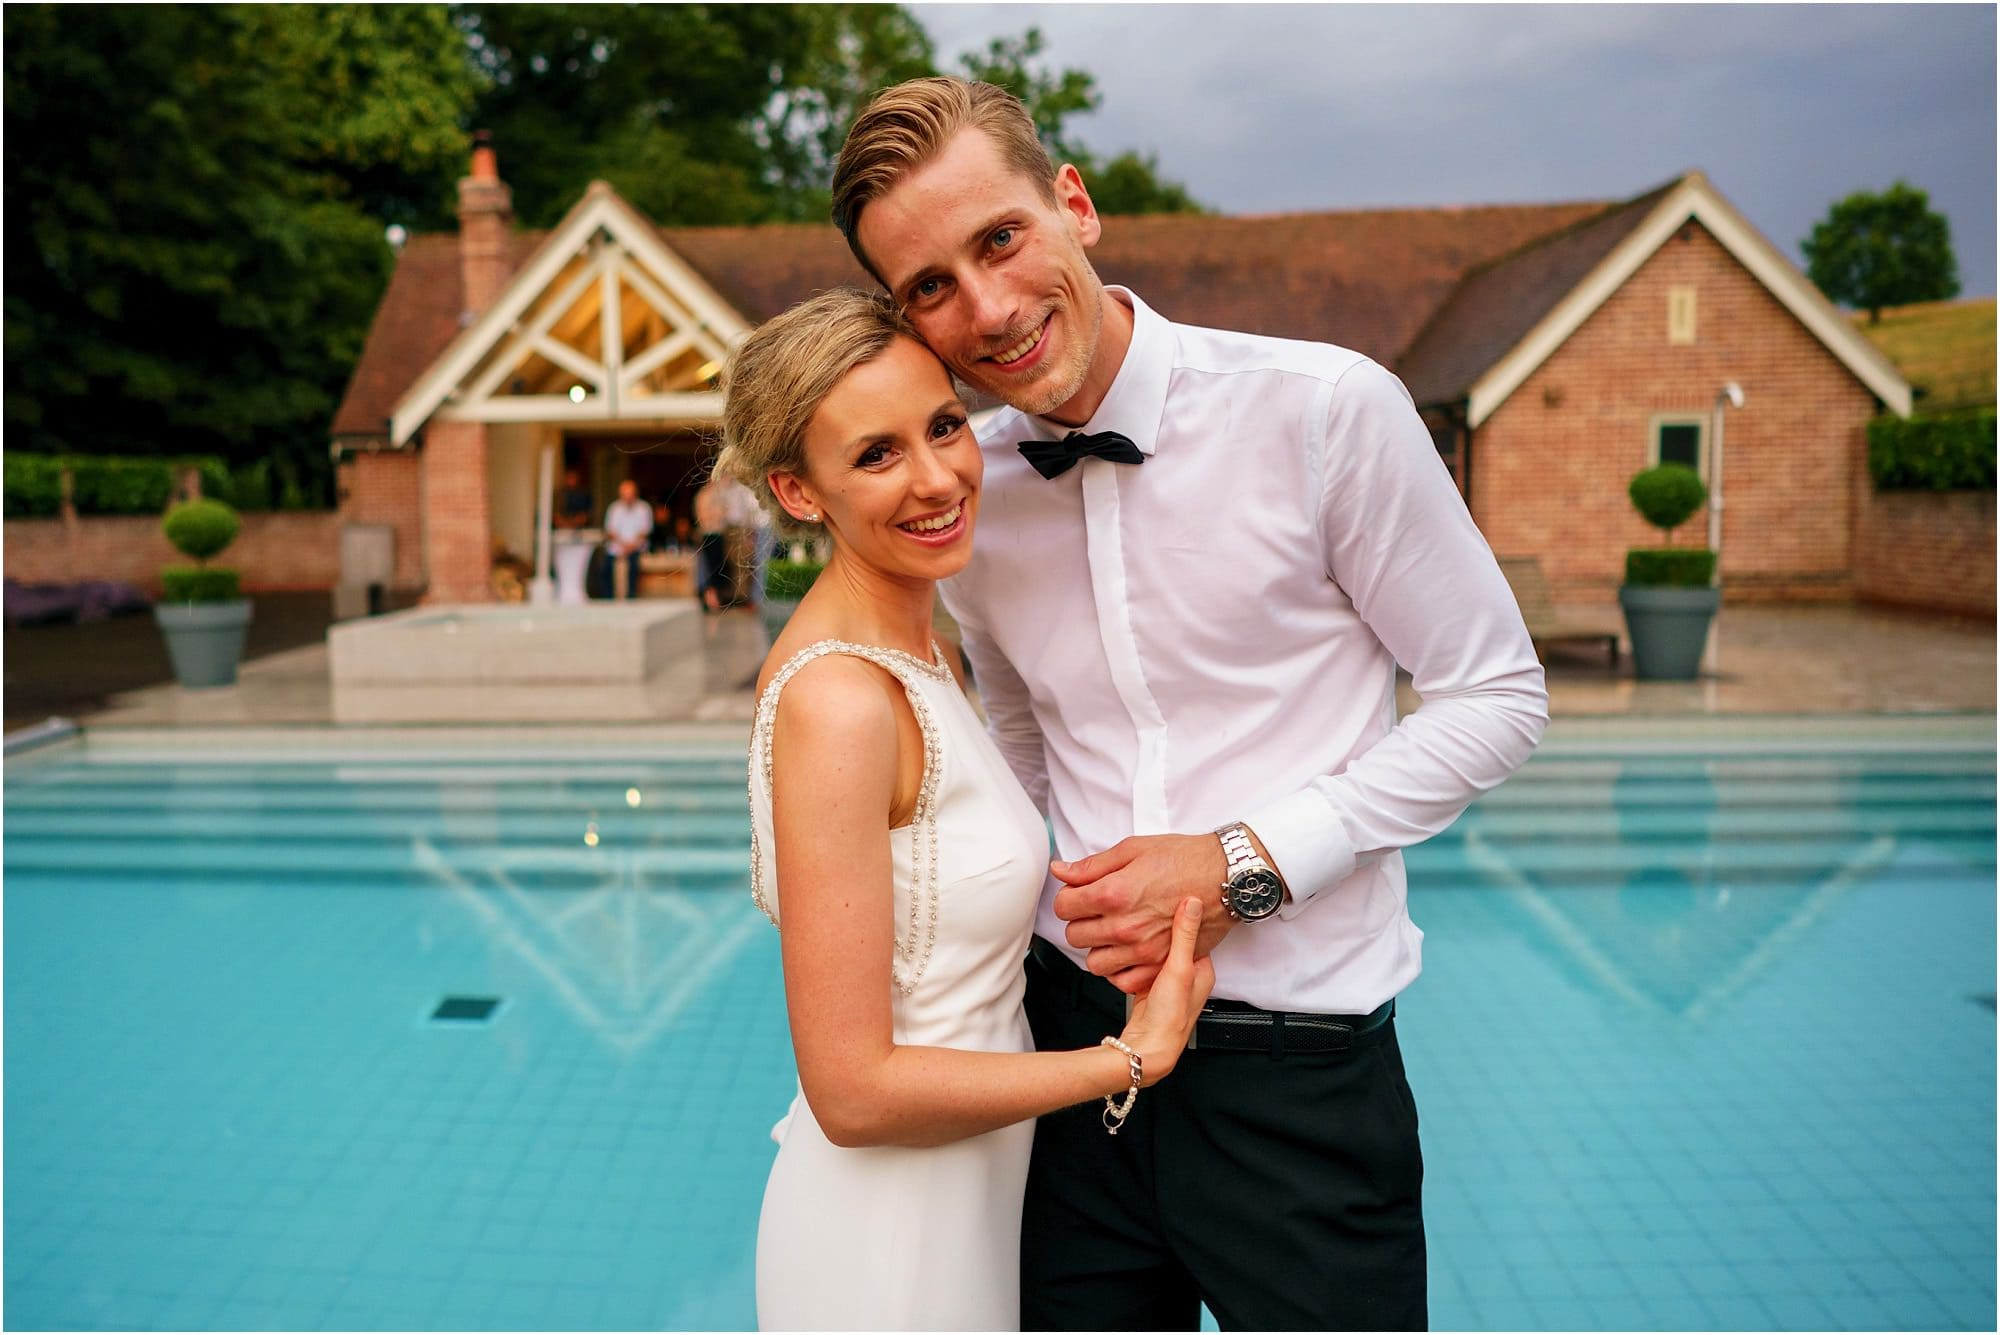 bride and groom by the pool on the hottest day of the year